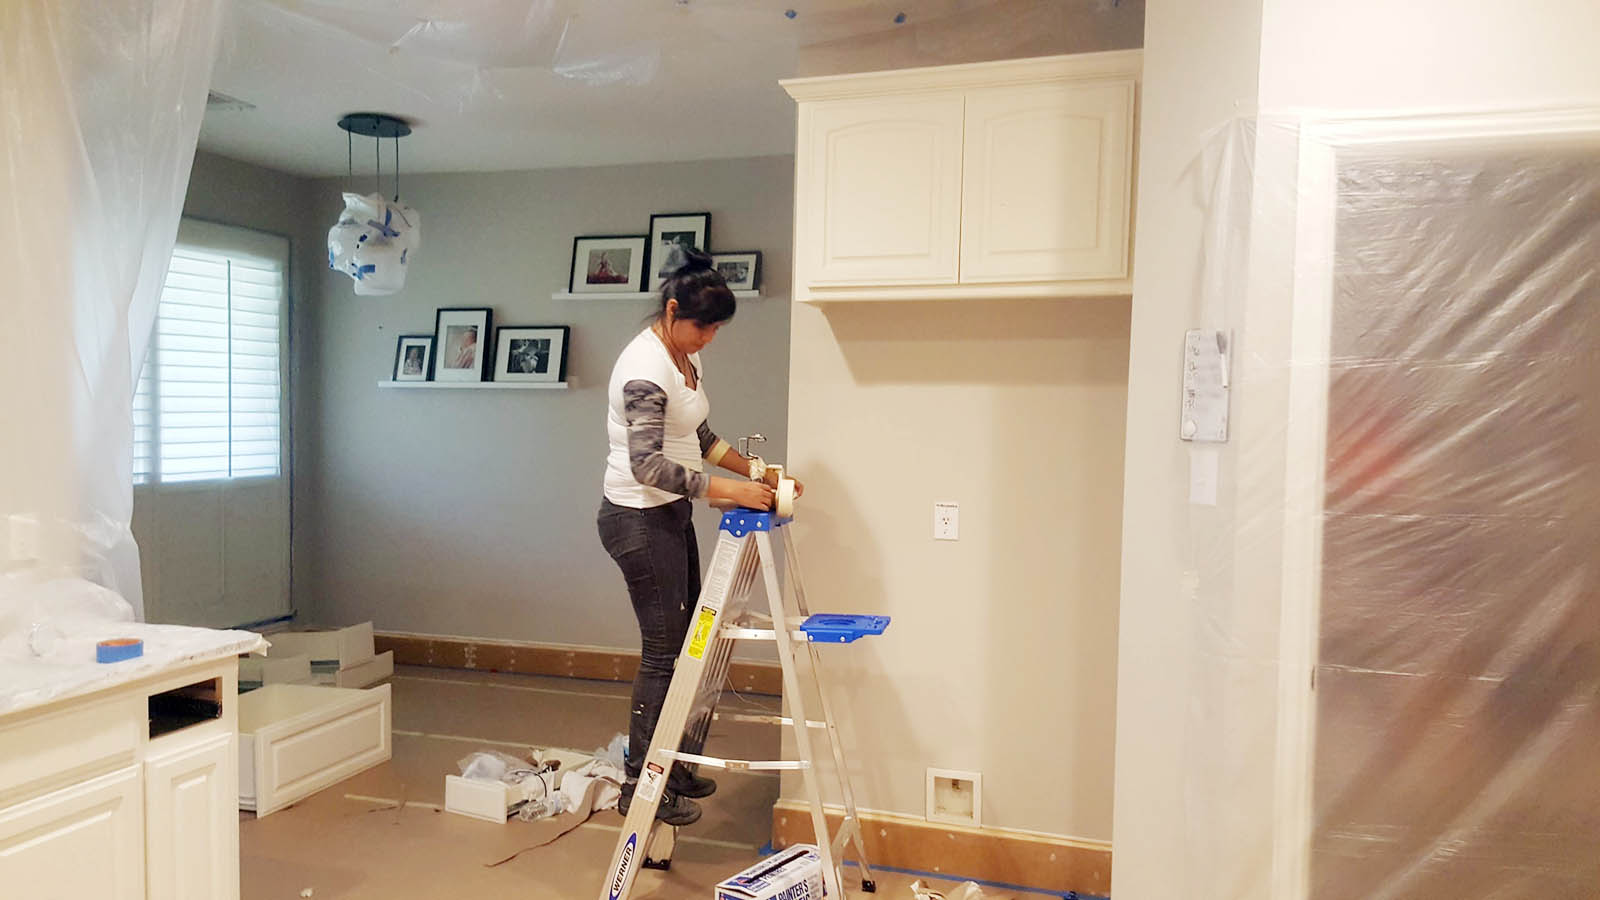 Missouri City-Pearland TX Professional Painting Contractors-We offer Residential & Commercial Painting, Interior Painting, Exterior Painting, Primer Painting, Industrial Painting, Professional Painters, Institutional Painters, and more.